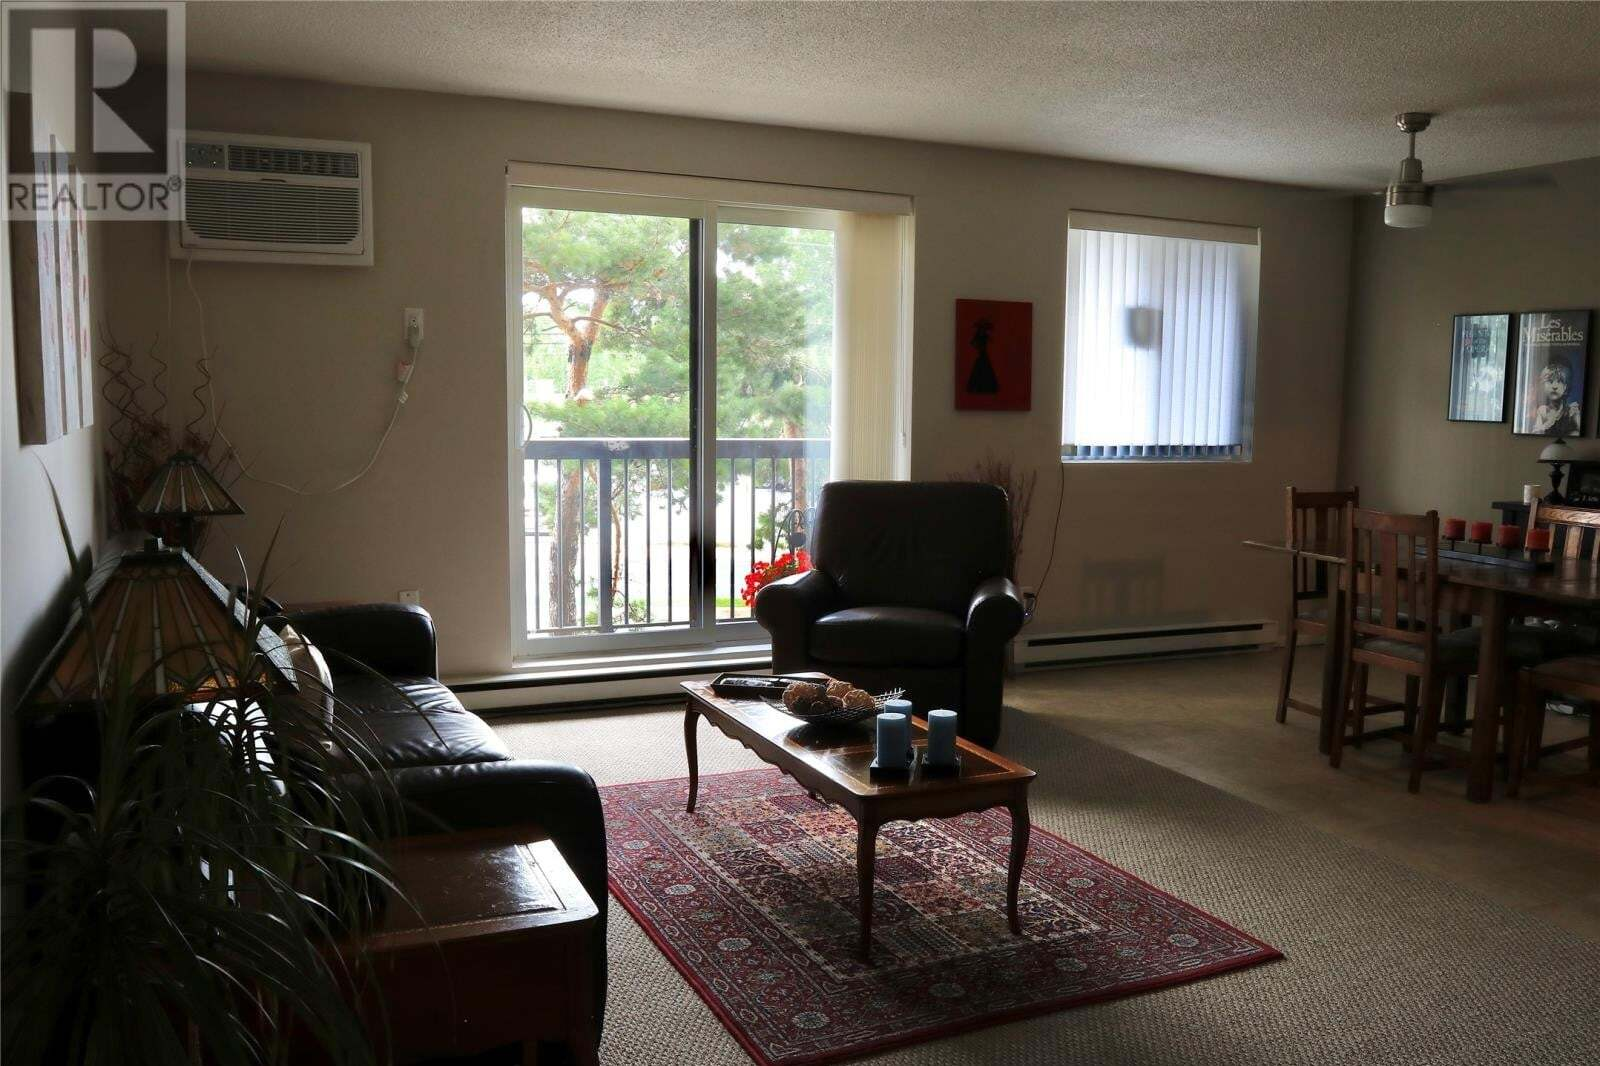 Condo for sale at 3950 Wyandotte St East Unit 205 Windsor Ontario - MLS: 20009237